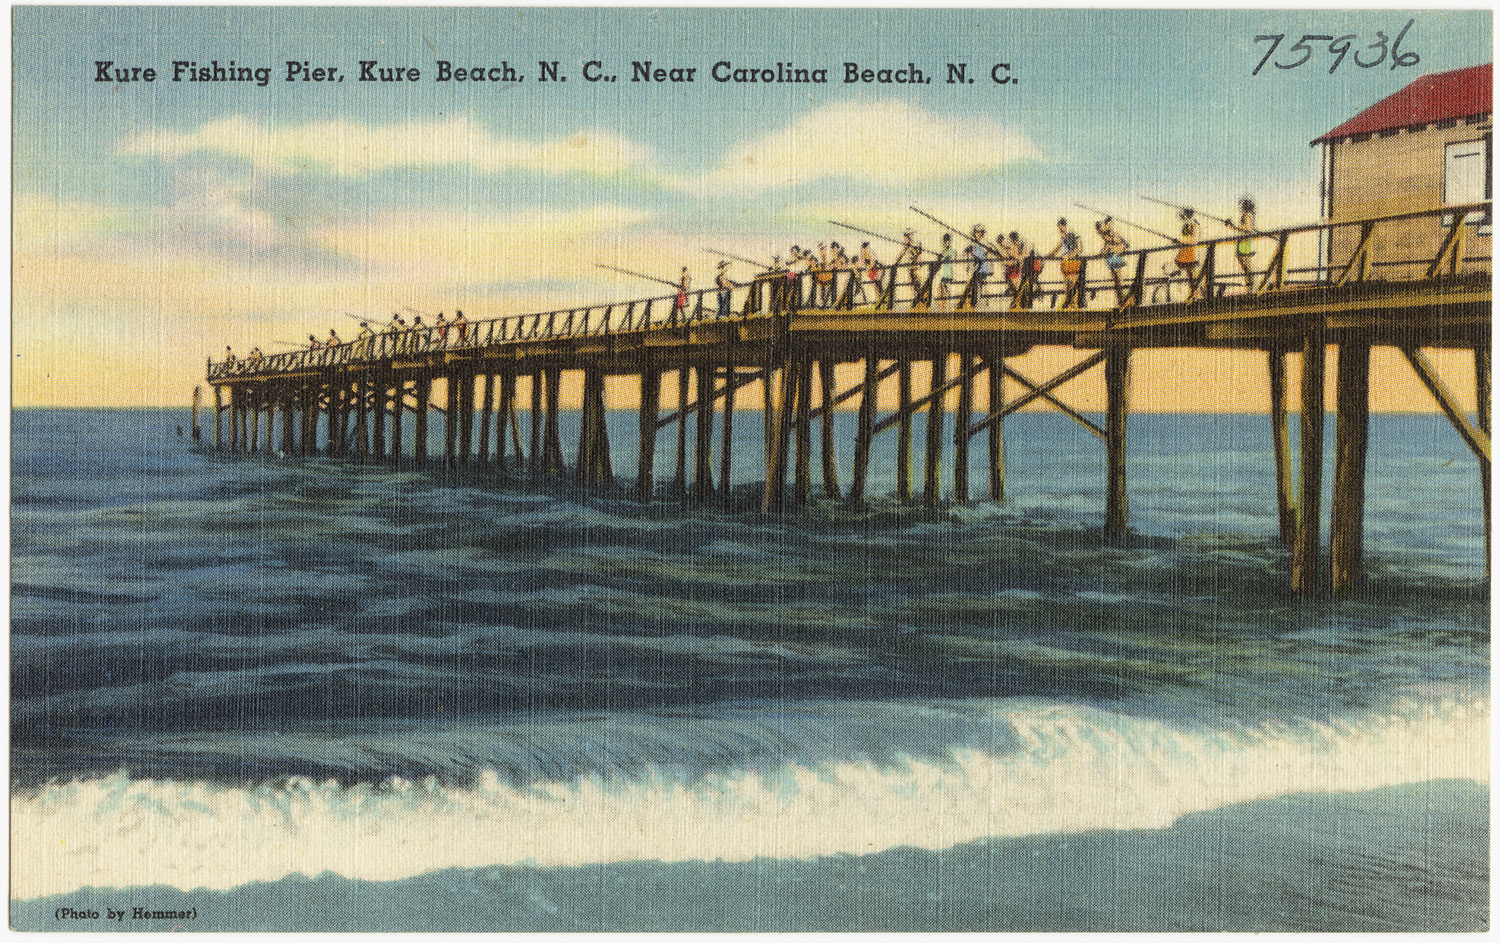 Carolina Beach To Wilmington Nc >> File:Kure Fishing Pier, Kure Beach, N. C., near Carolina Beach, N. C. (5756048788).jpg ...